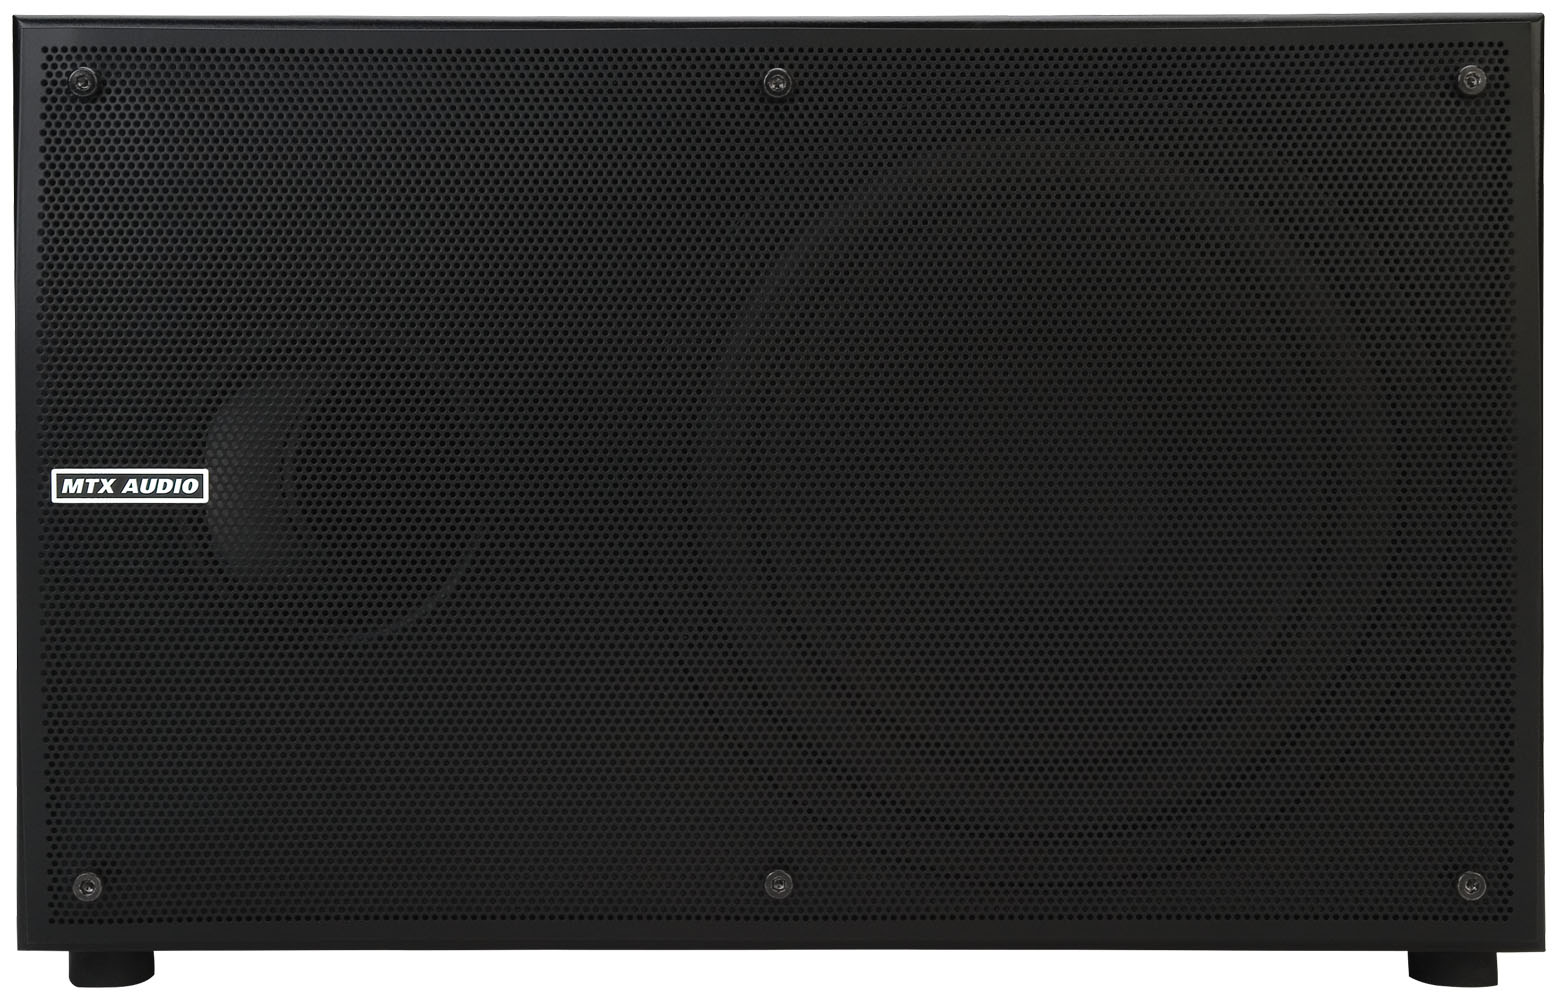 Ct10sw 10 Quot 250w Rms Wireless Ready Powered Subwoofer Mtx